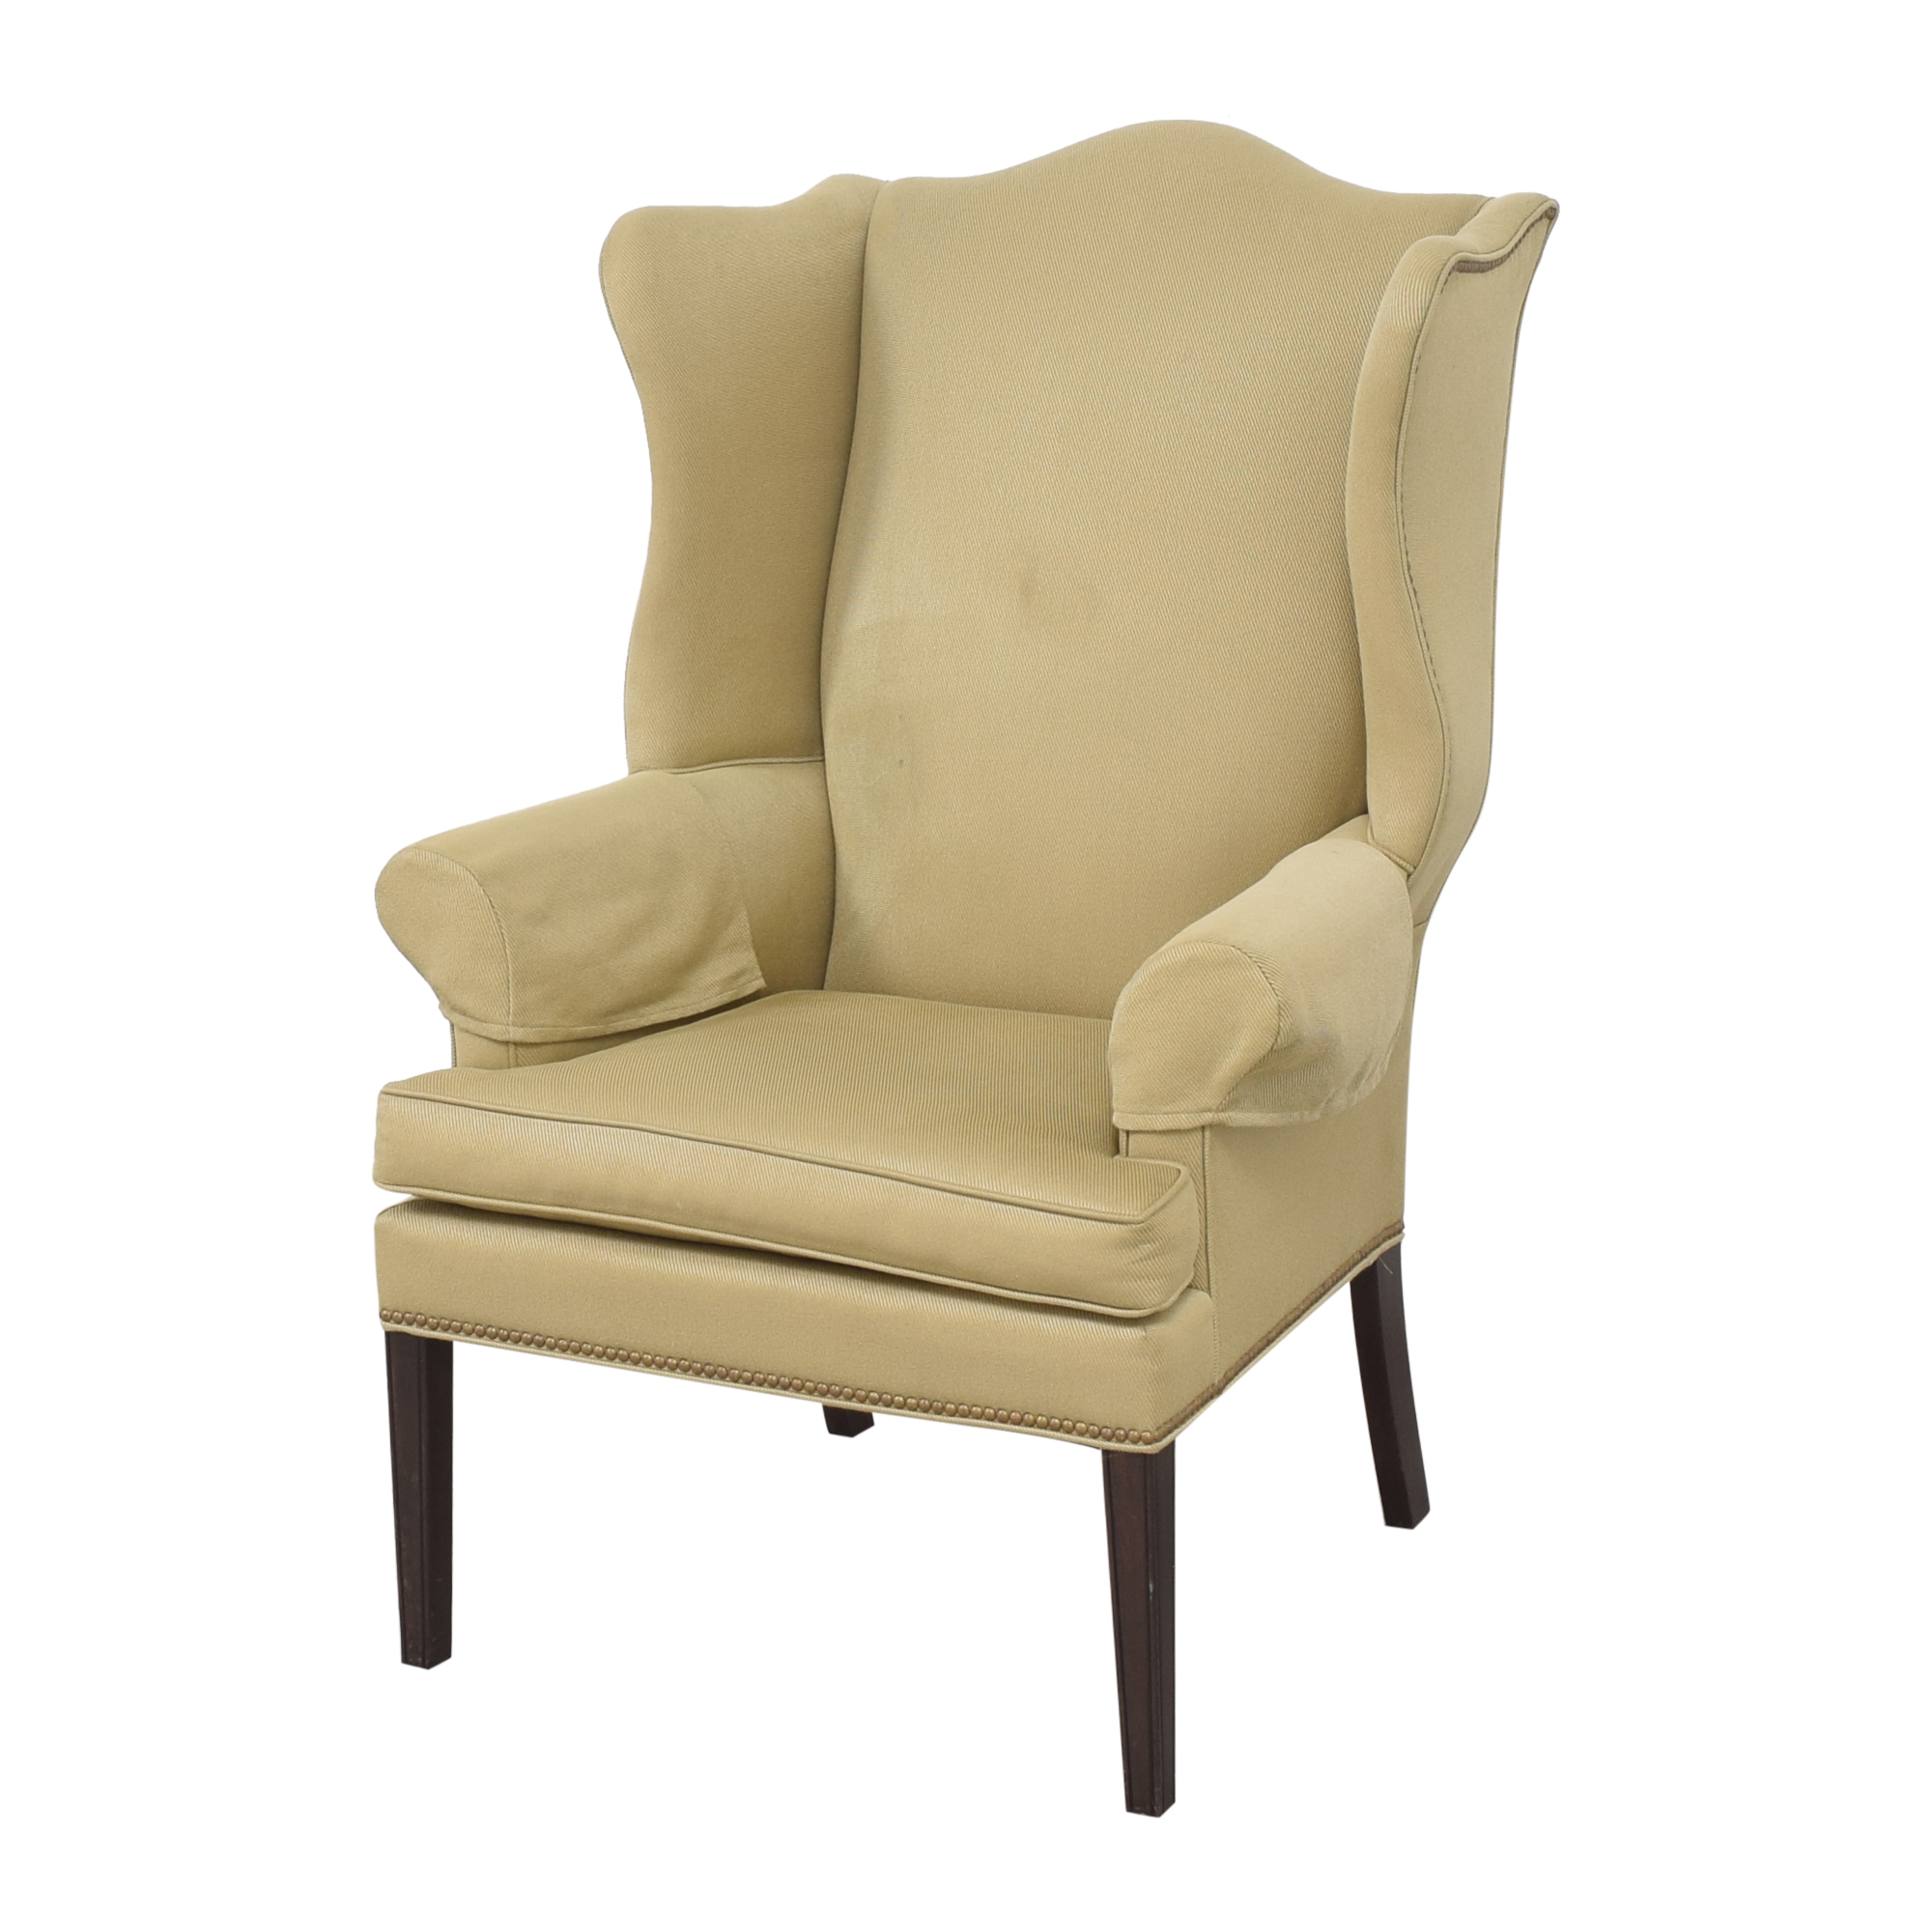 Ethan Allen Ethan Allen Wing Back Chair Accent Chairs